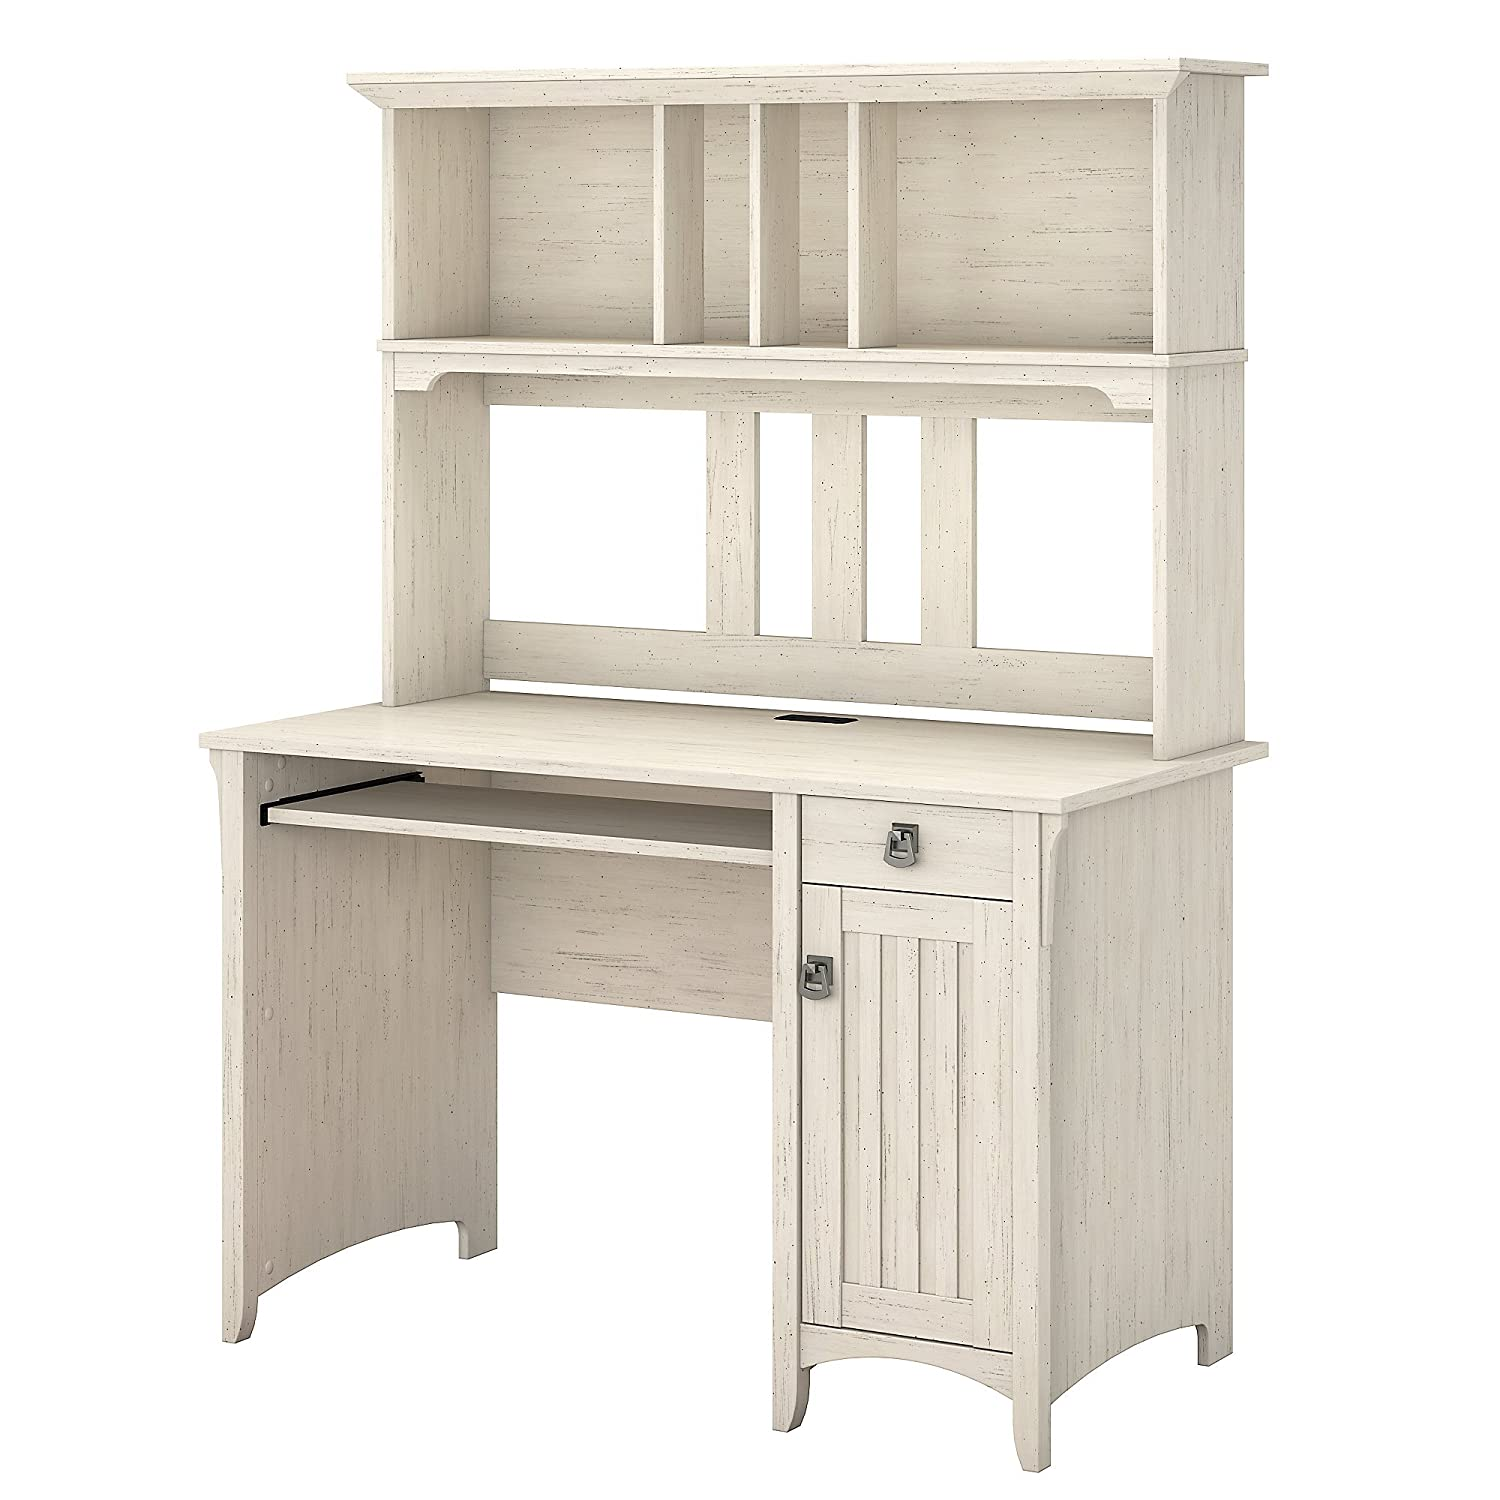 wellington with hutch hardware dublin furniture displaycabinet and cremonehardware cabinet vintage display cremone product